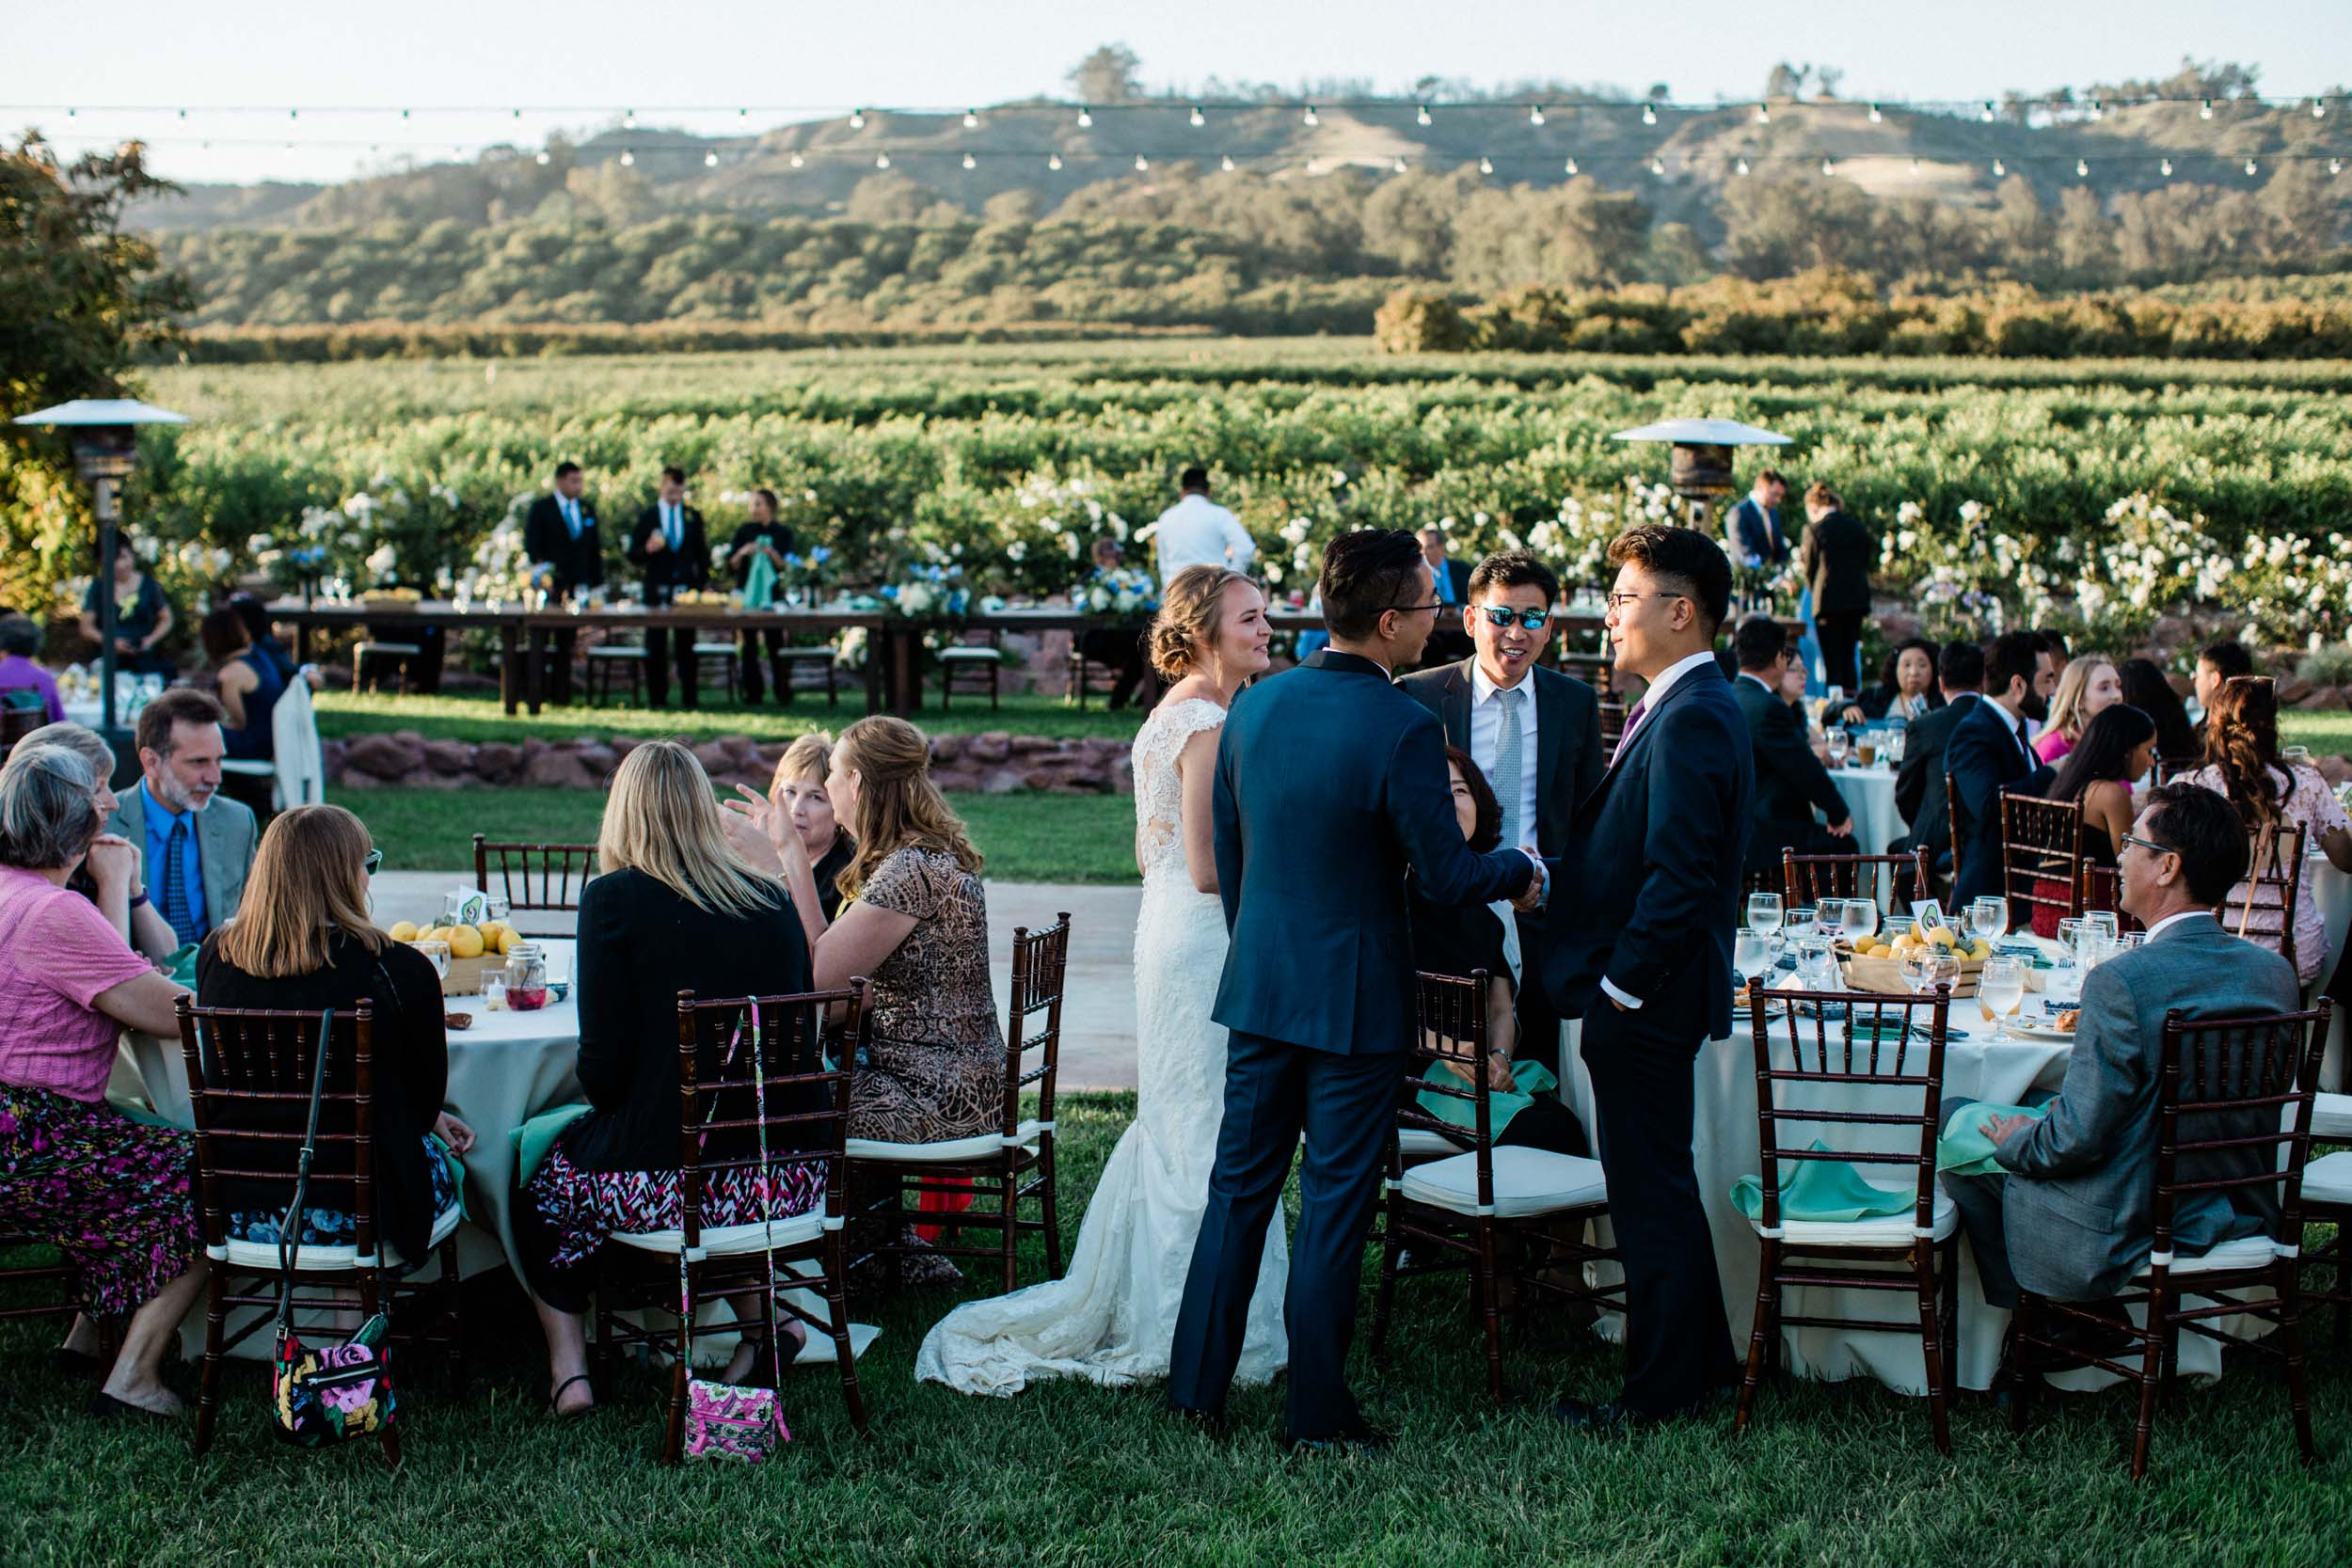 BKM-Photography-Gerry-Ranch-Southern-California-Wedding-0134.jpg